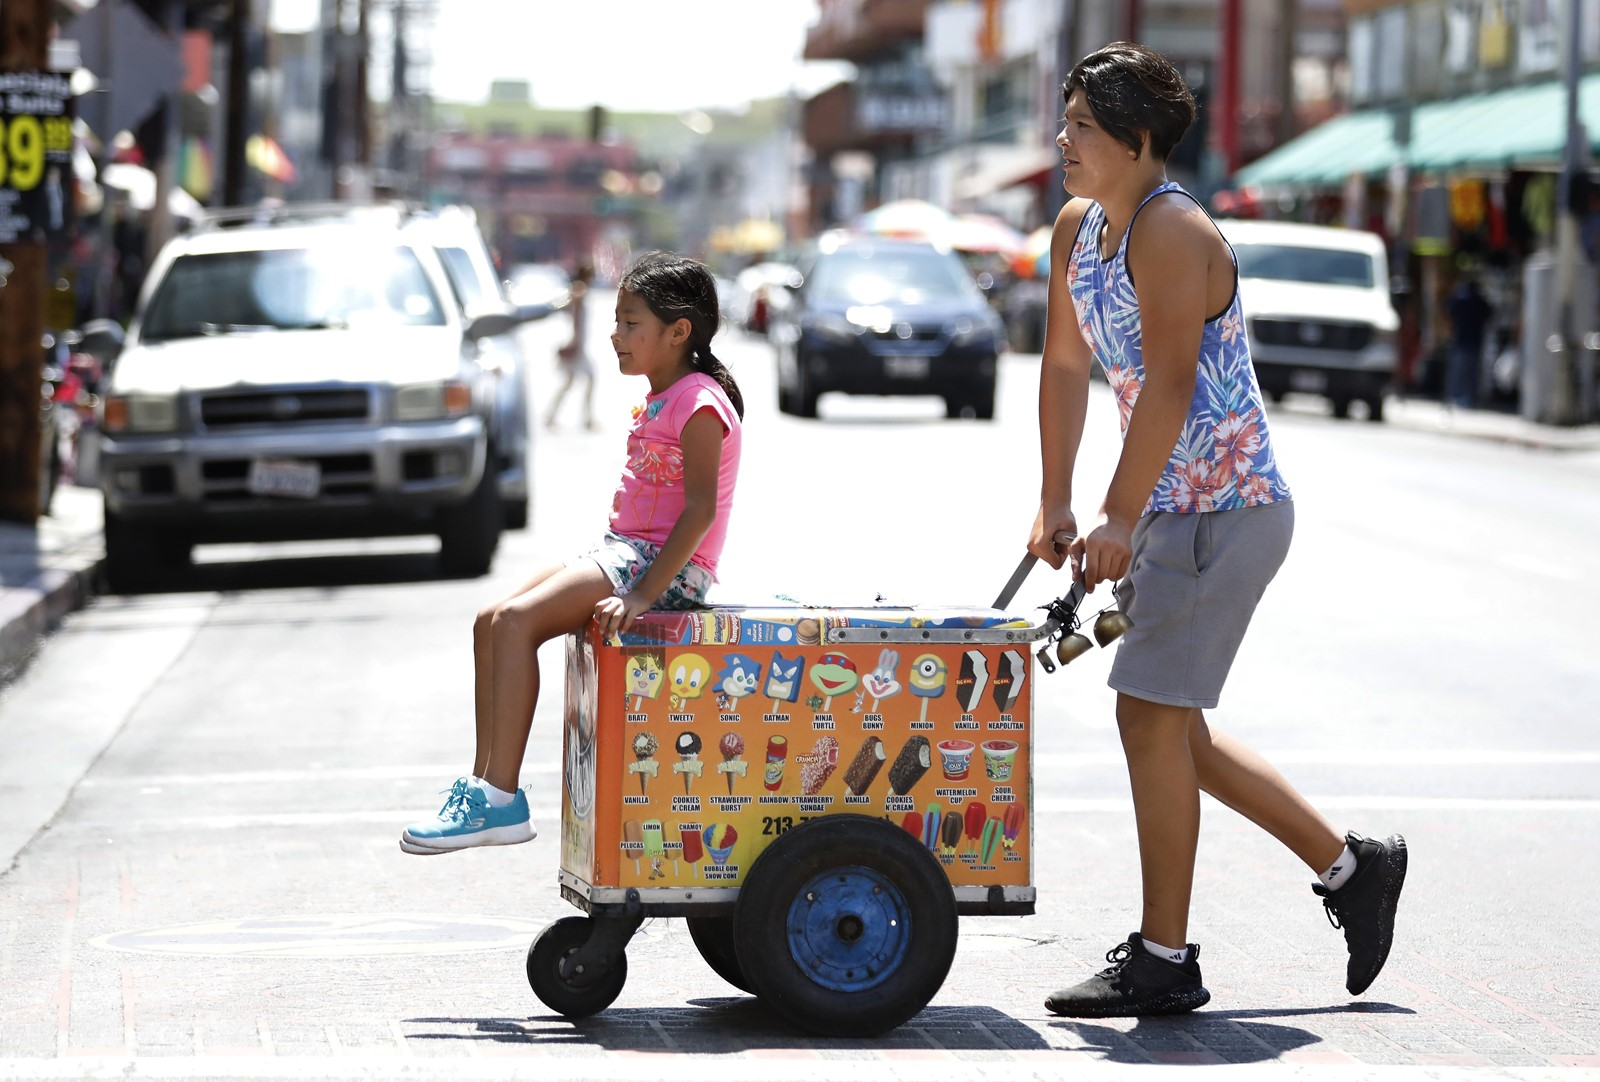 Adrian Valdivia gives Acacia Valencia a ride on an ice cream cart Wednesday in downtown Los Angeles, which endured its third-hottest July on record. — Photograph: Photograph: Mel Melcon/Los Angeles Times.